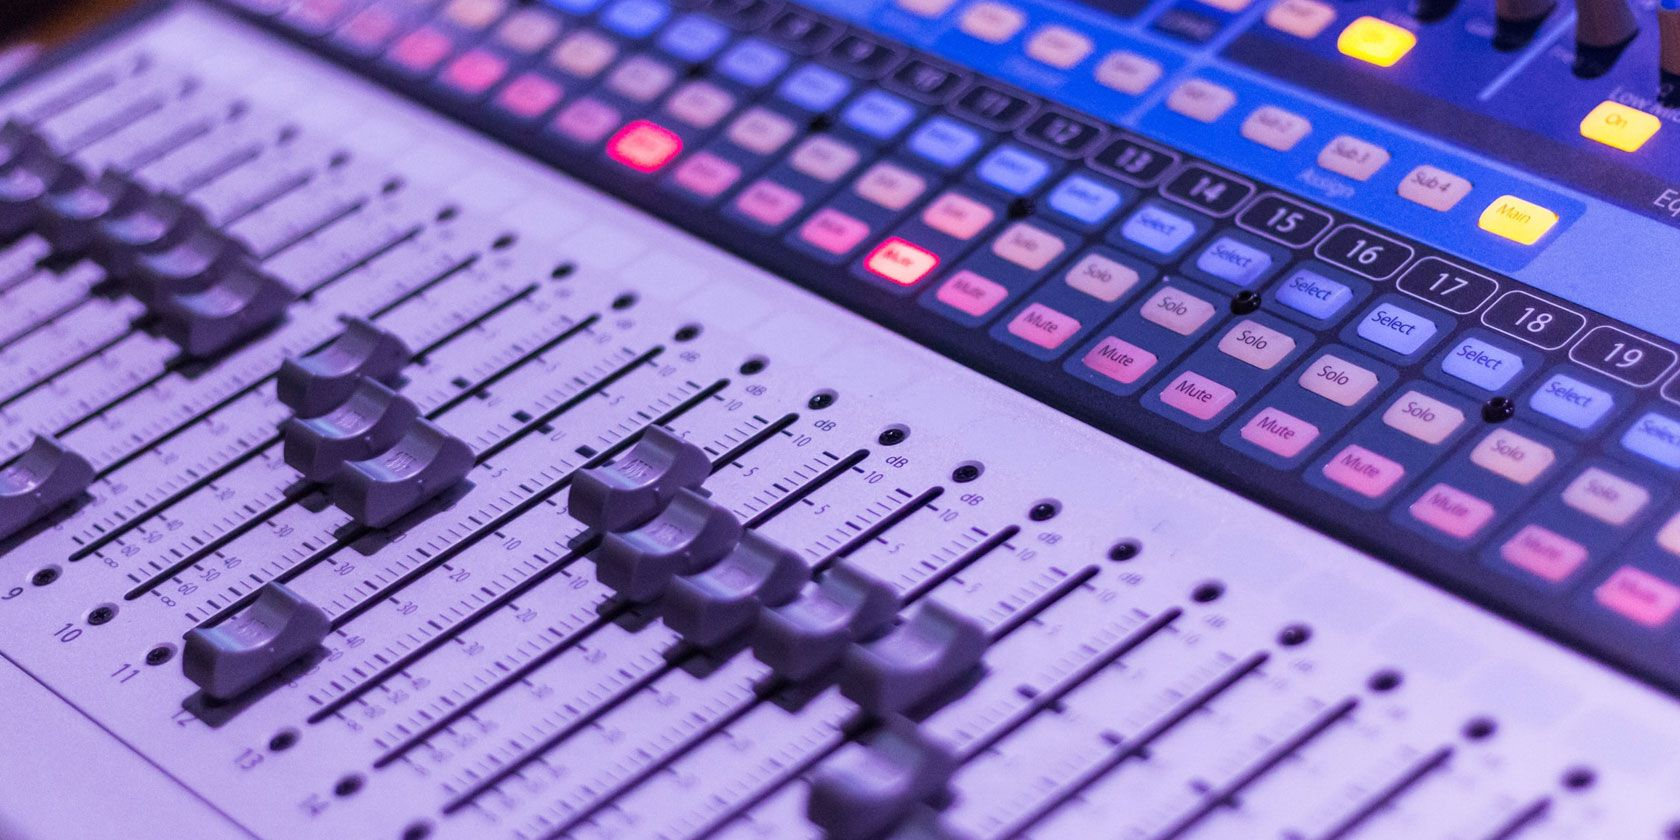 6 Best Soundboard Apps to Create or Discover Free Sound